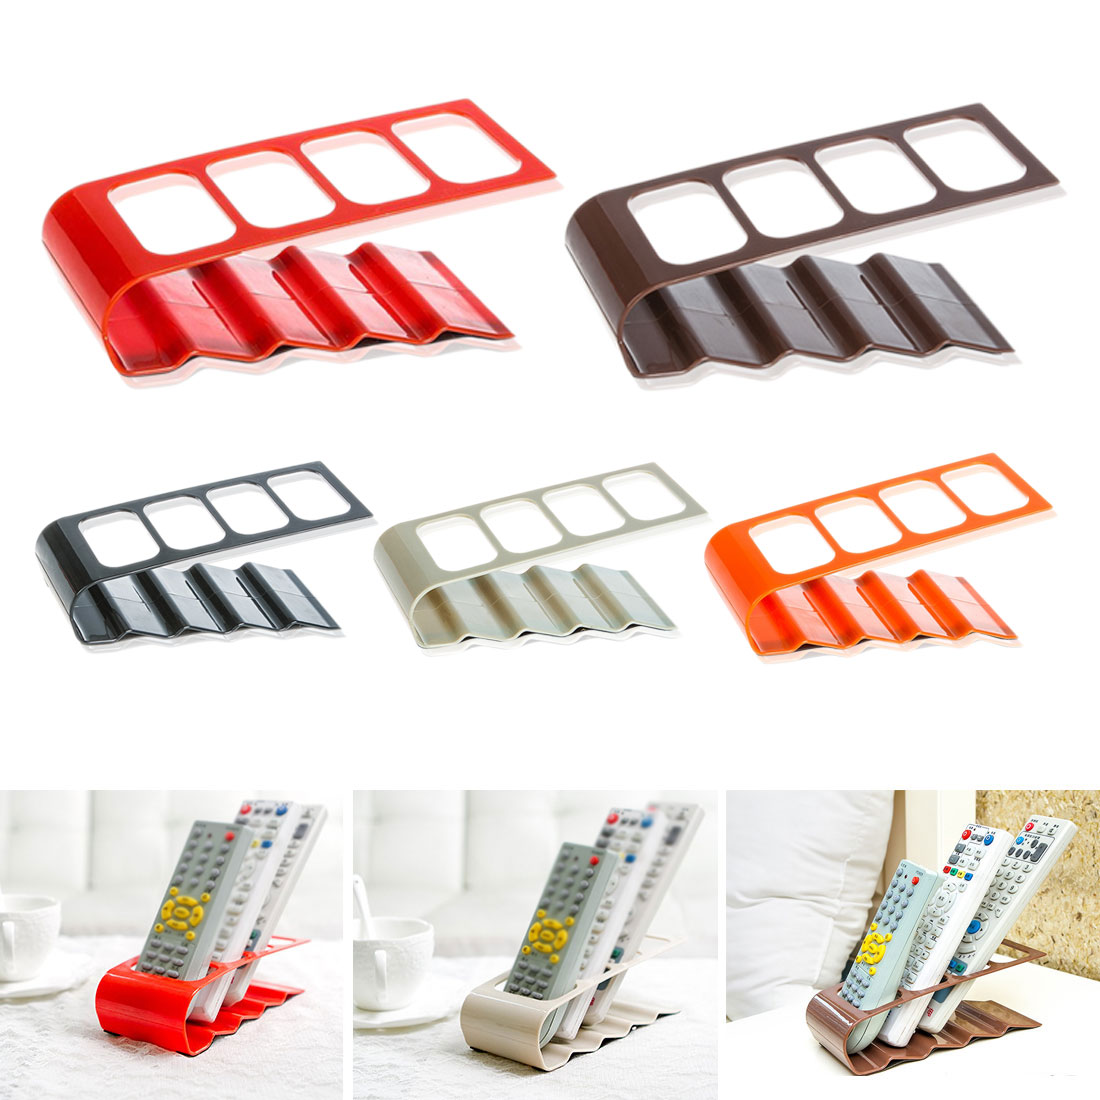 Practical Storage Holder <font><b>Rack</b></font> 4 Section <font><b>Remote</b></font> Storage <font><b>Rack</b></font> TV DVD VCR Step <font><b>Remote</b></font> Control Phone Holder Stand Storage Organiser image